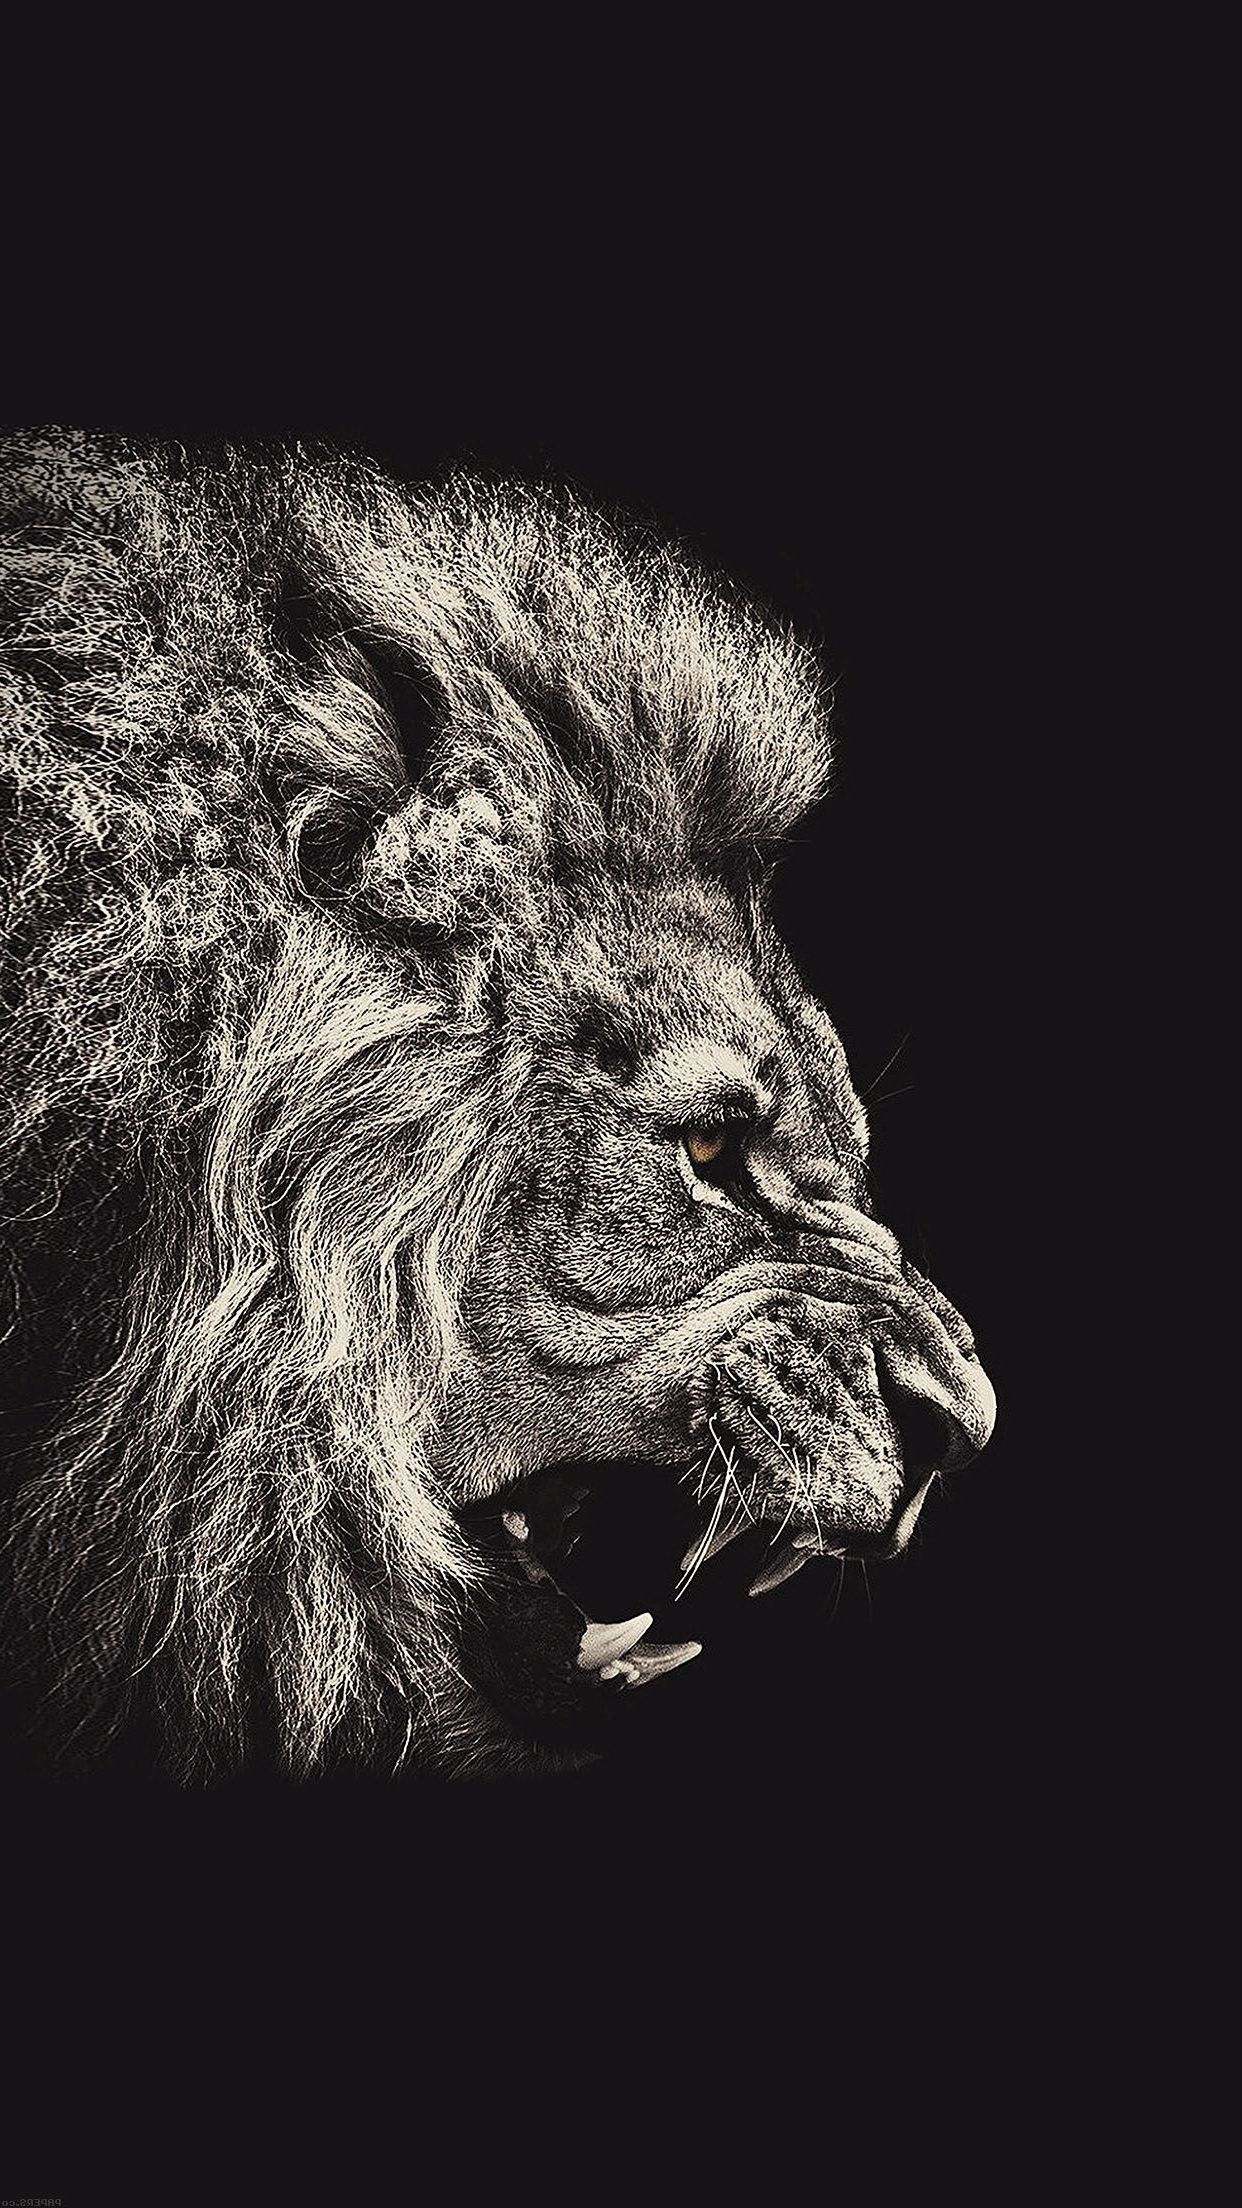 Lion Iphone Wallpapers Top Free Lion Iphone Backgrounds